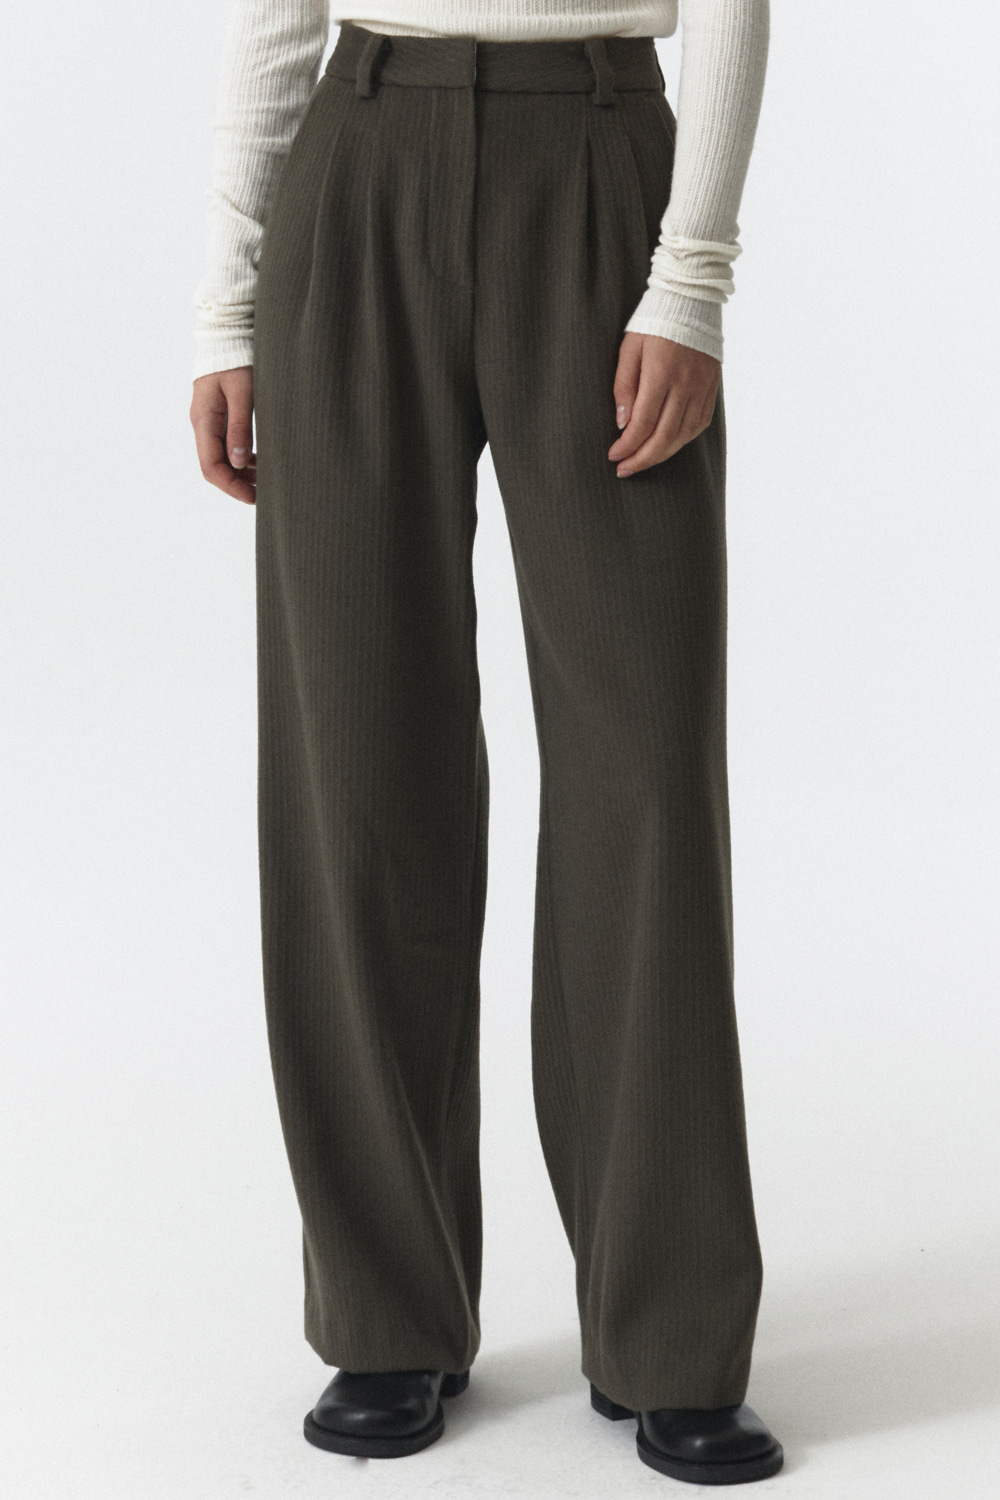 Wool Over Pants Women JA [Khaki Gray]